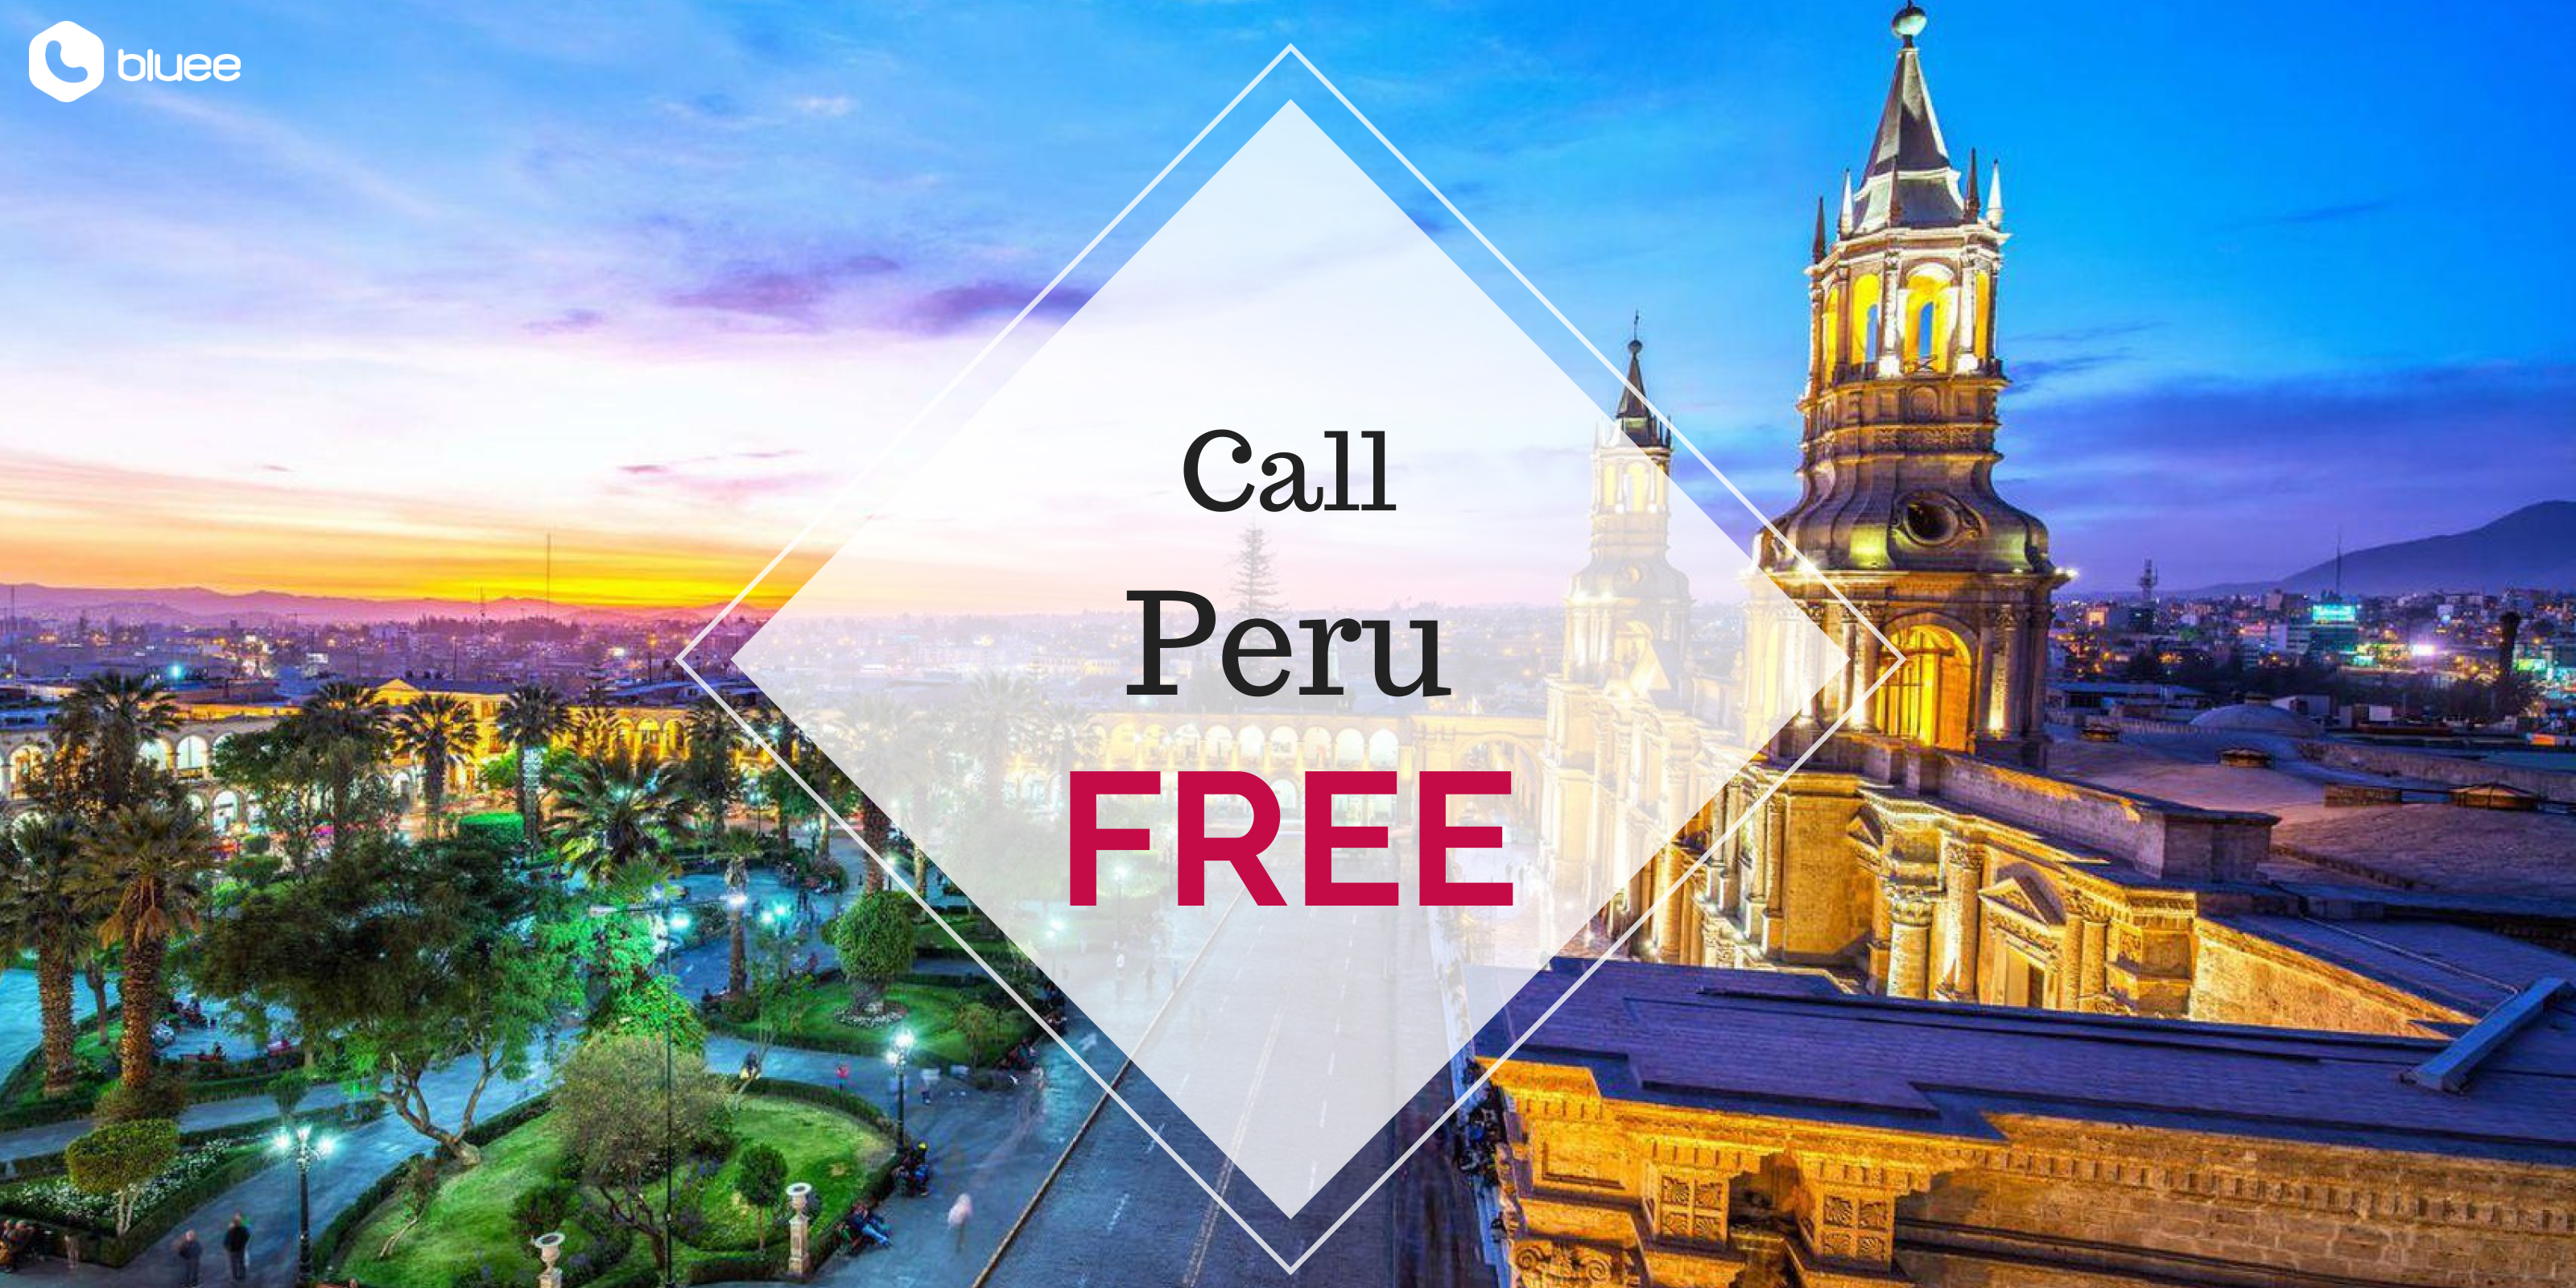 Free Thursday: Call Peru For FREE!